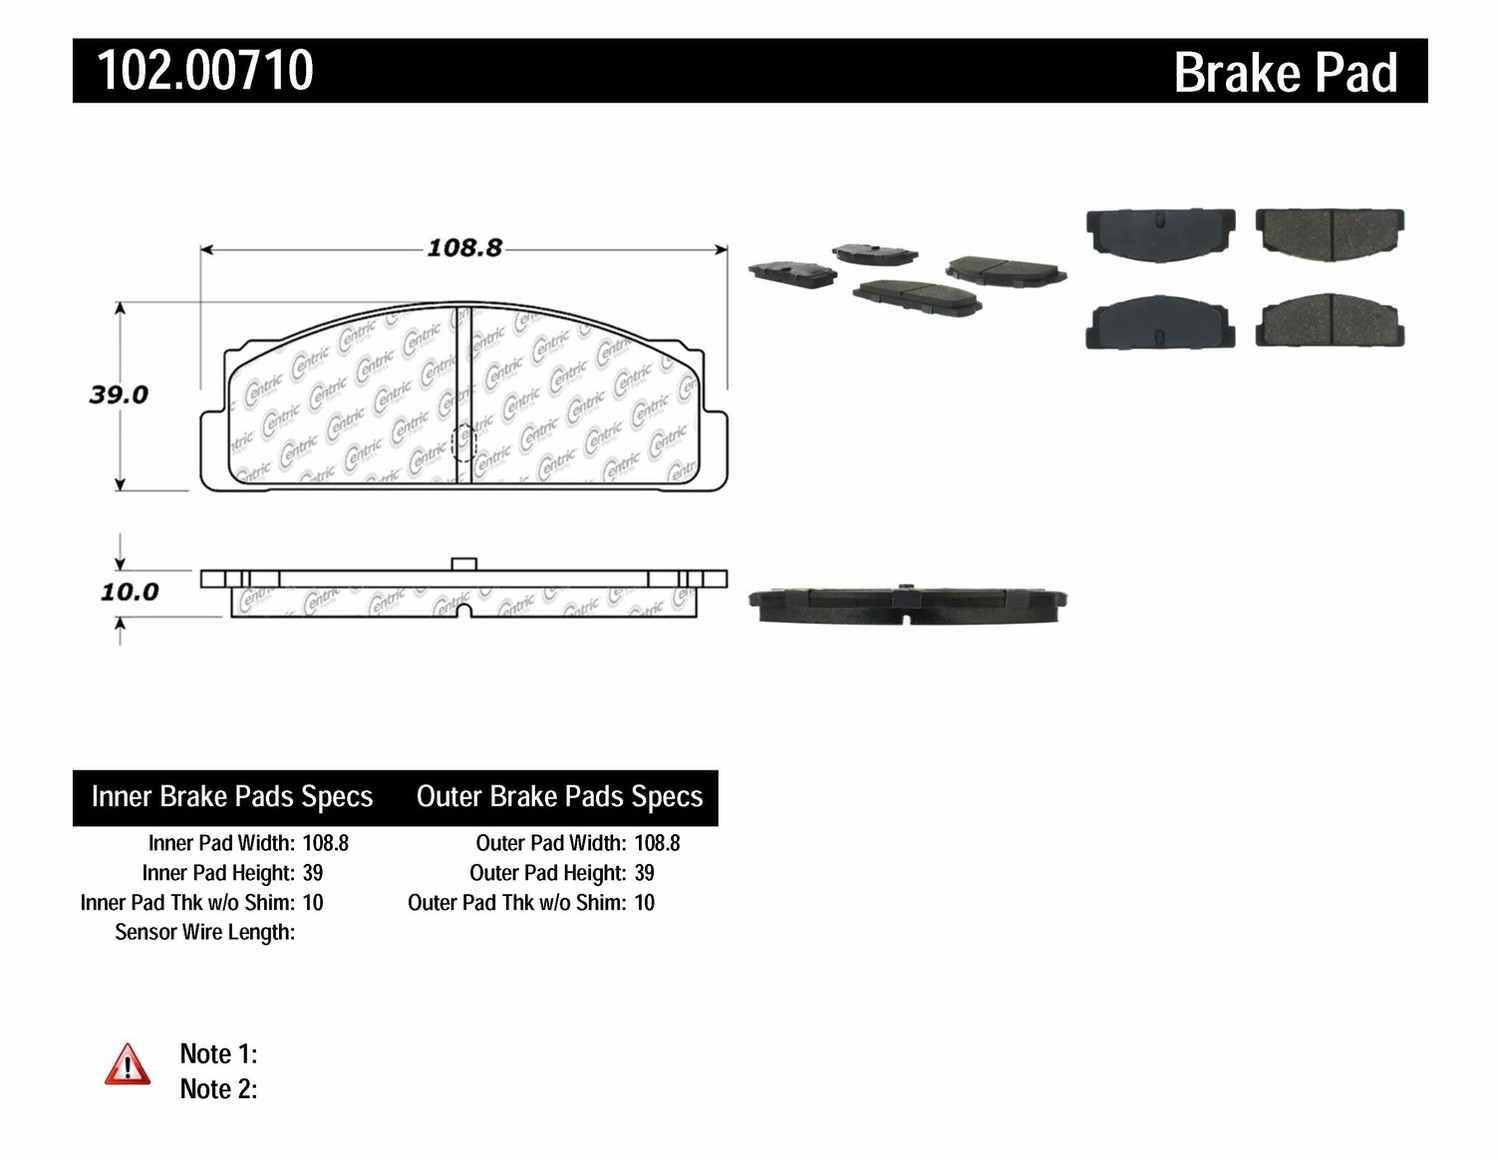 C-TEK BY CENTRIC - C-TEK Metallic Brake Pads-Preferred - CTK 102.00710